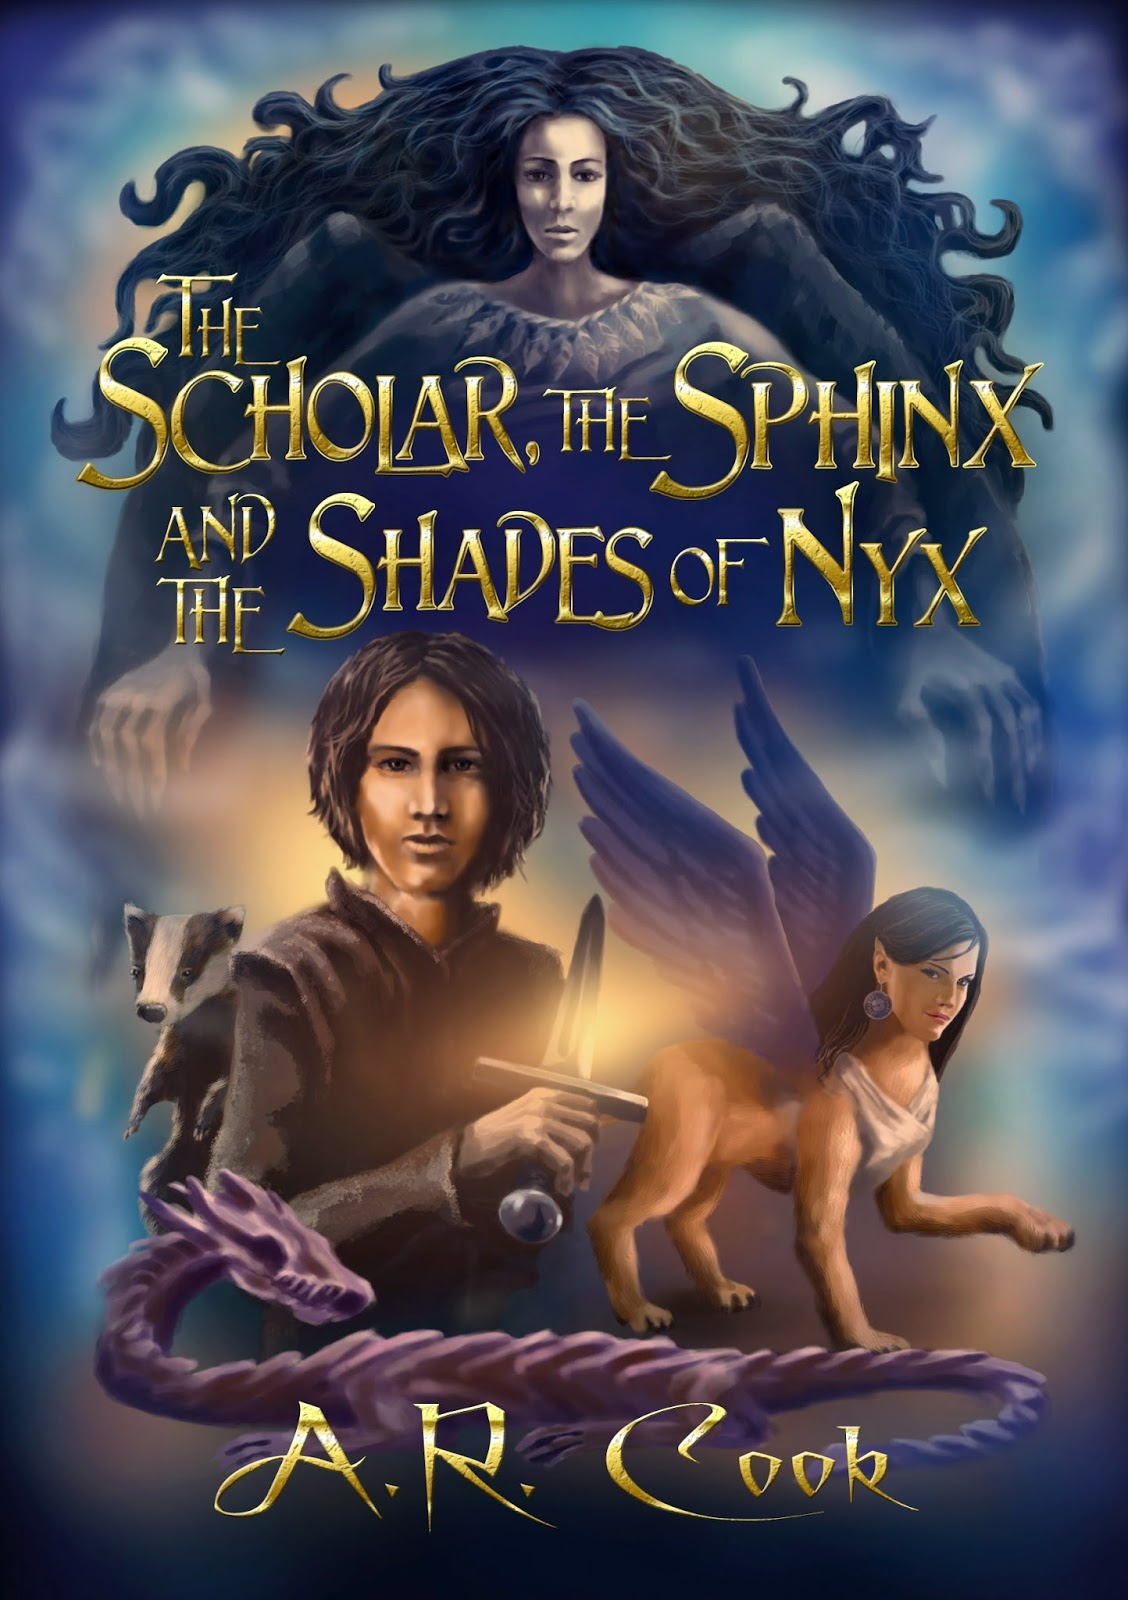 http://www.bookdepository.com/Scholar-Sphinx-Shades-Nyx-Alison-Reeger-Cook/9781908483874